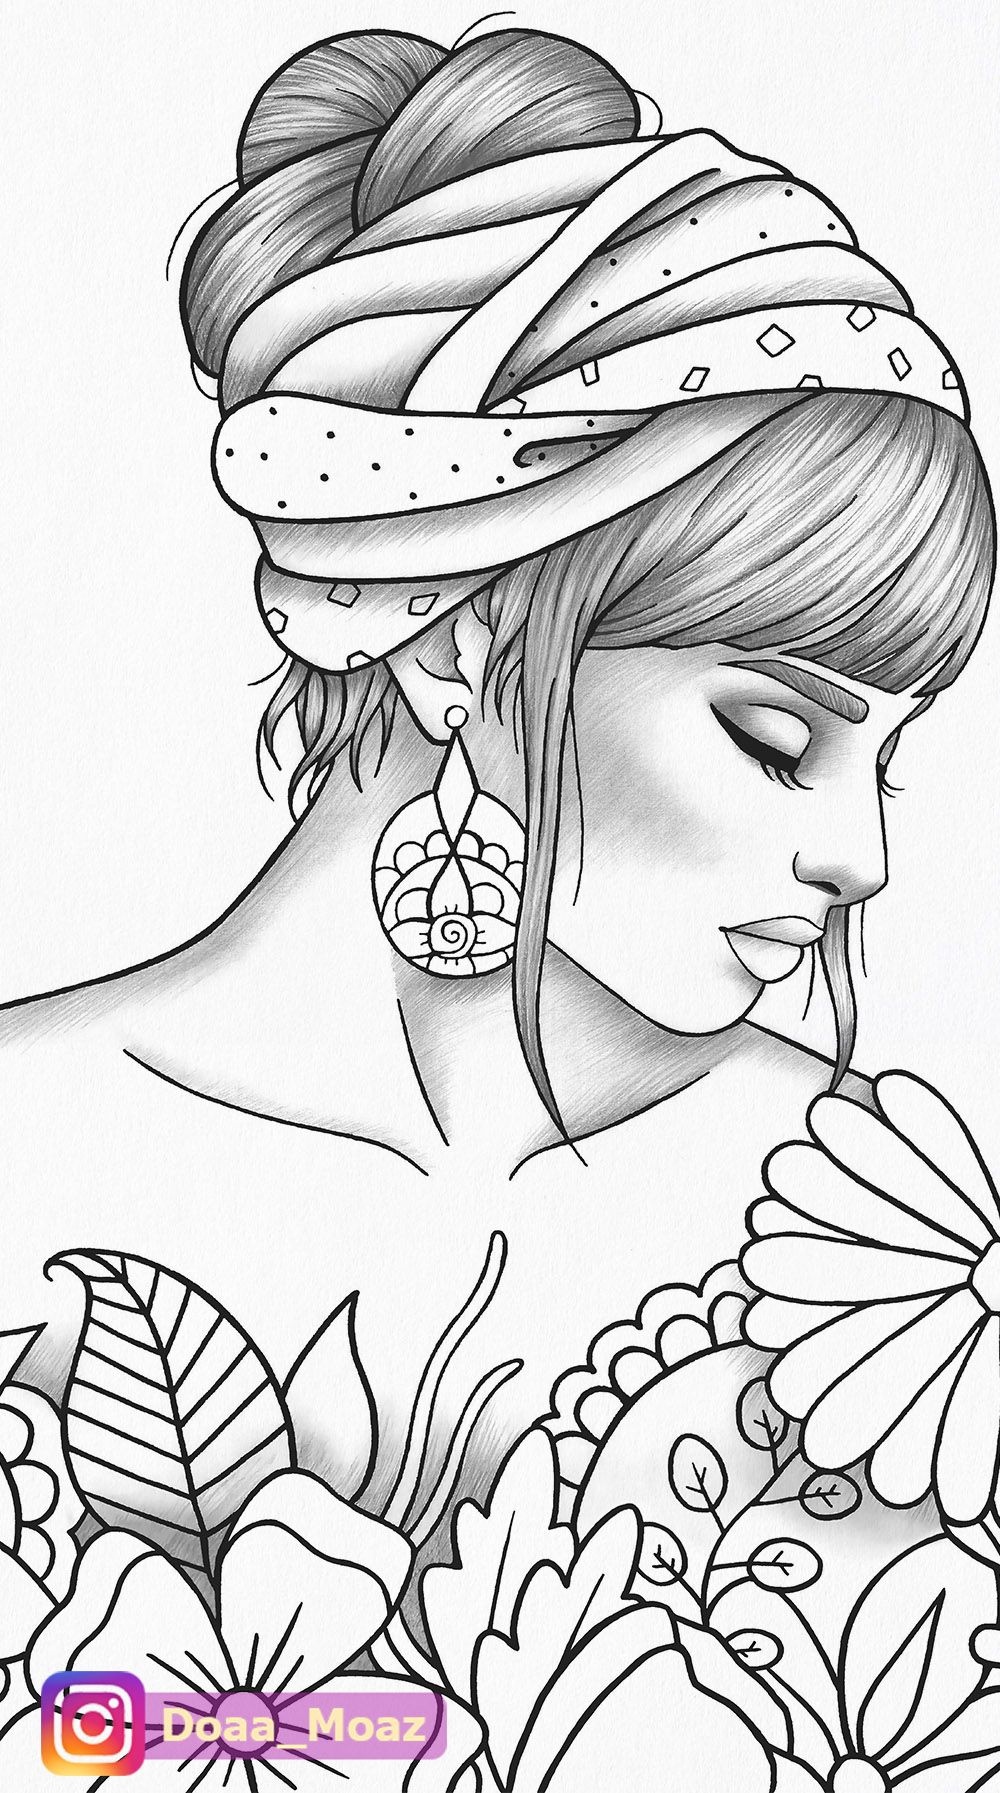 Printable Coloring Page Girl Portrait And Clothes Colouring Etsy Art Drawings Sketches Creative Coloring Book Art Art Drawings Sketches Simple